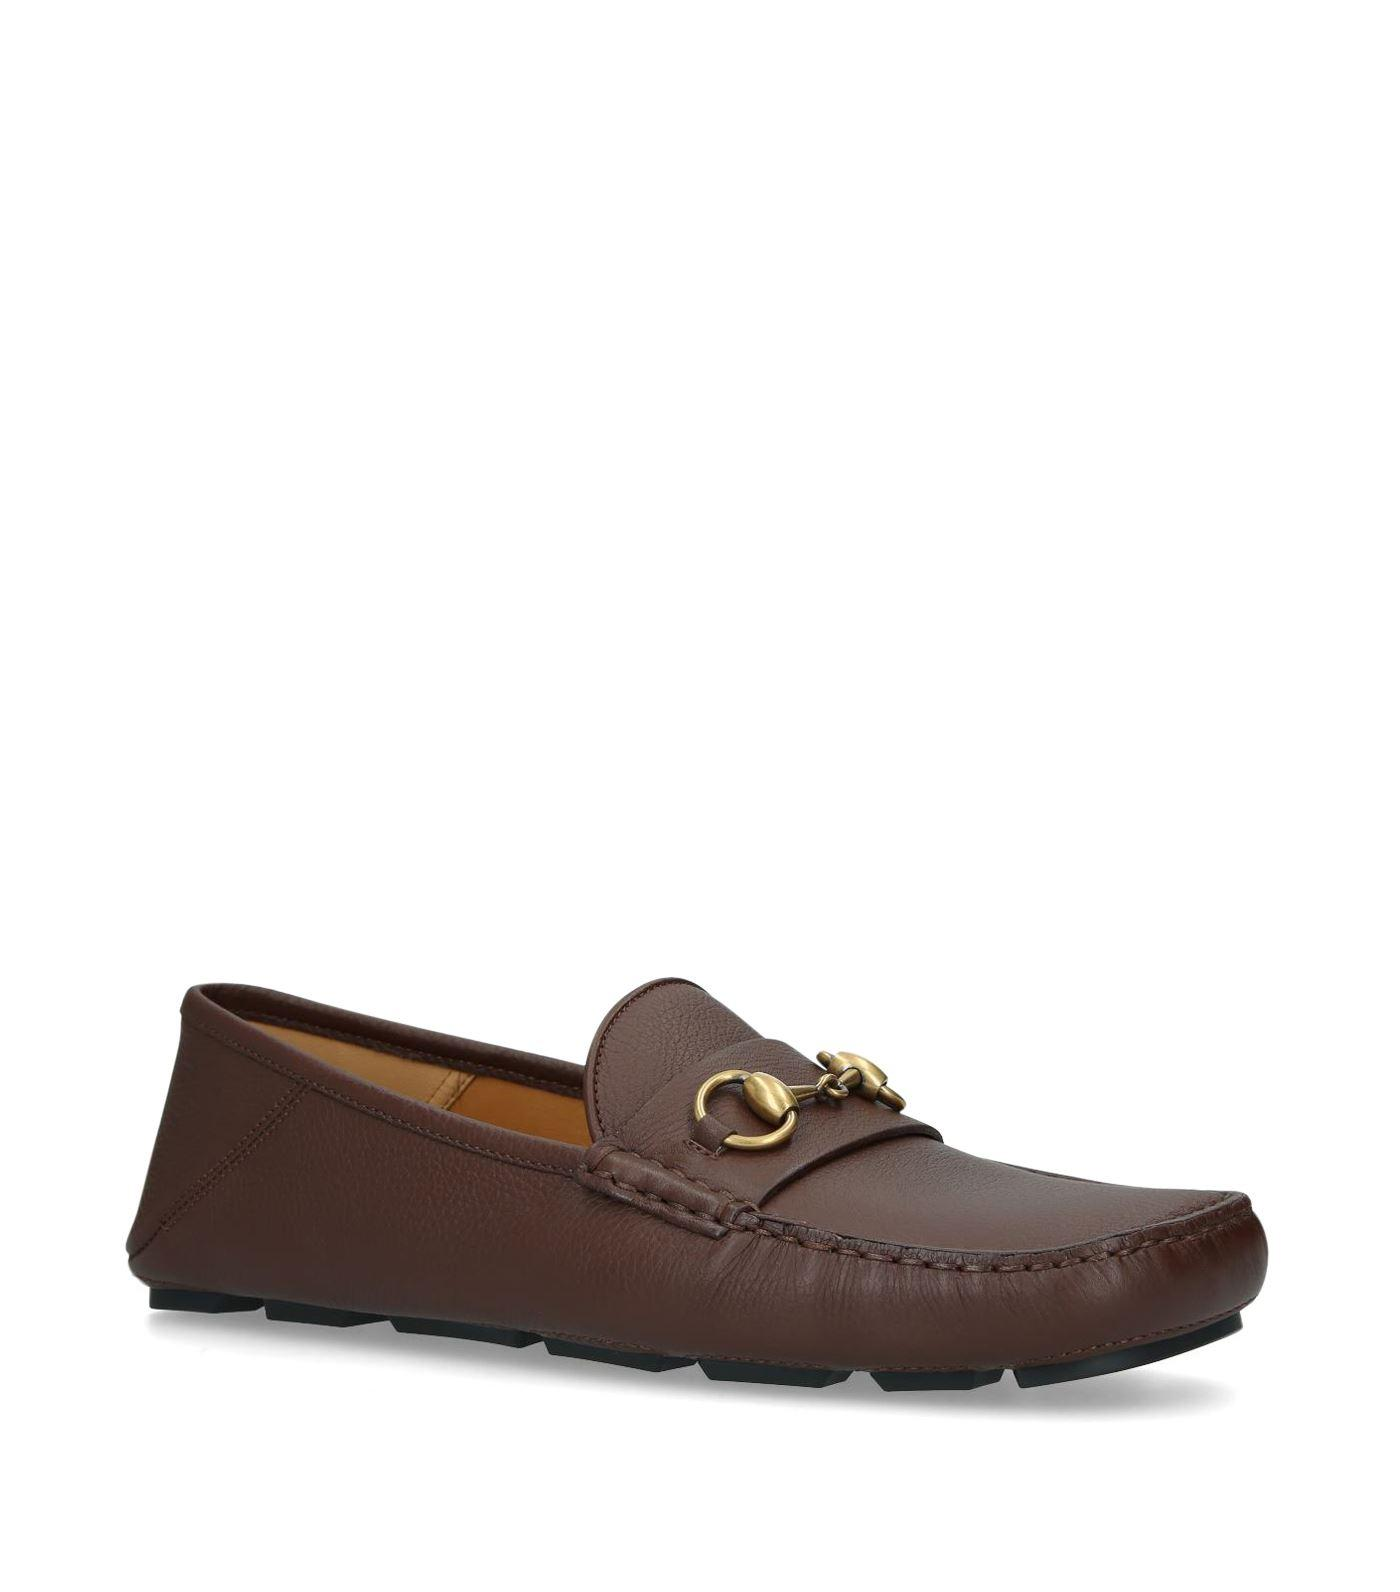 Gucci Leather Black kanye Driving Loafers for Men - Lyst